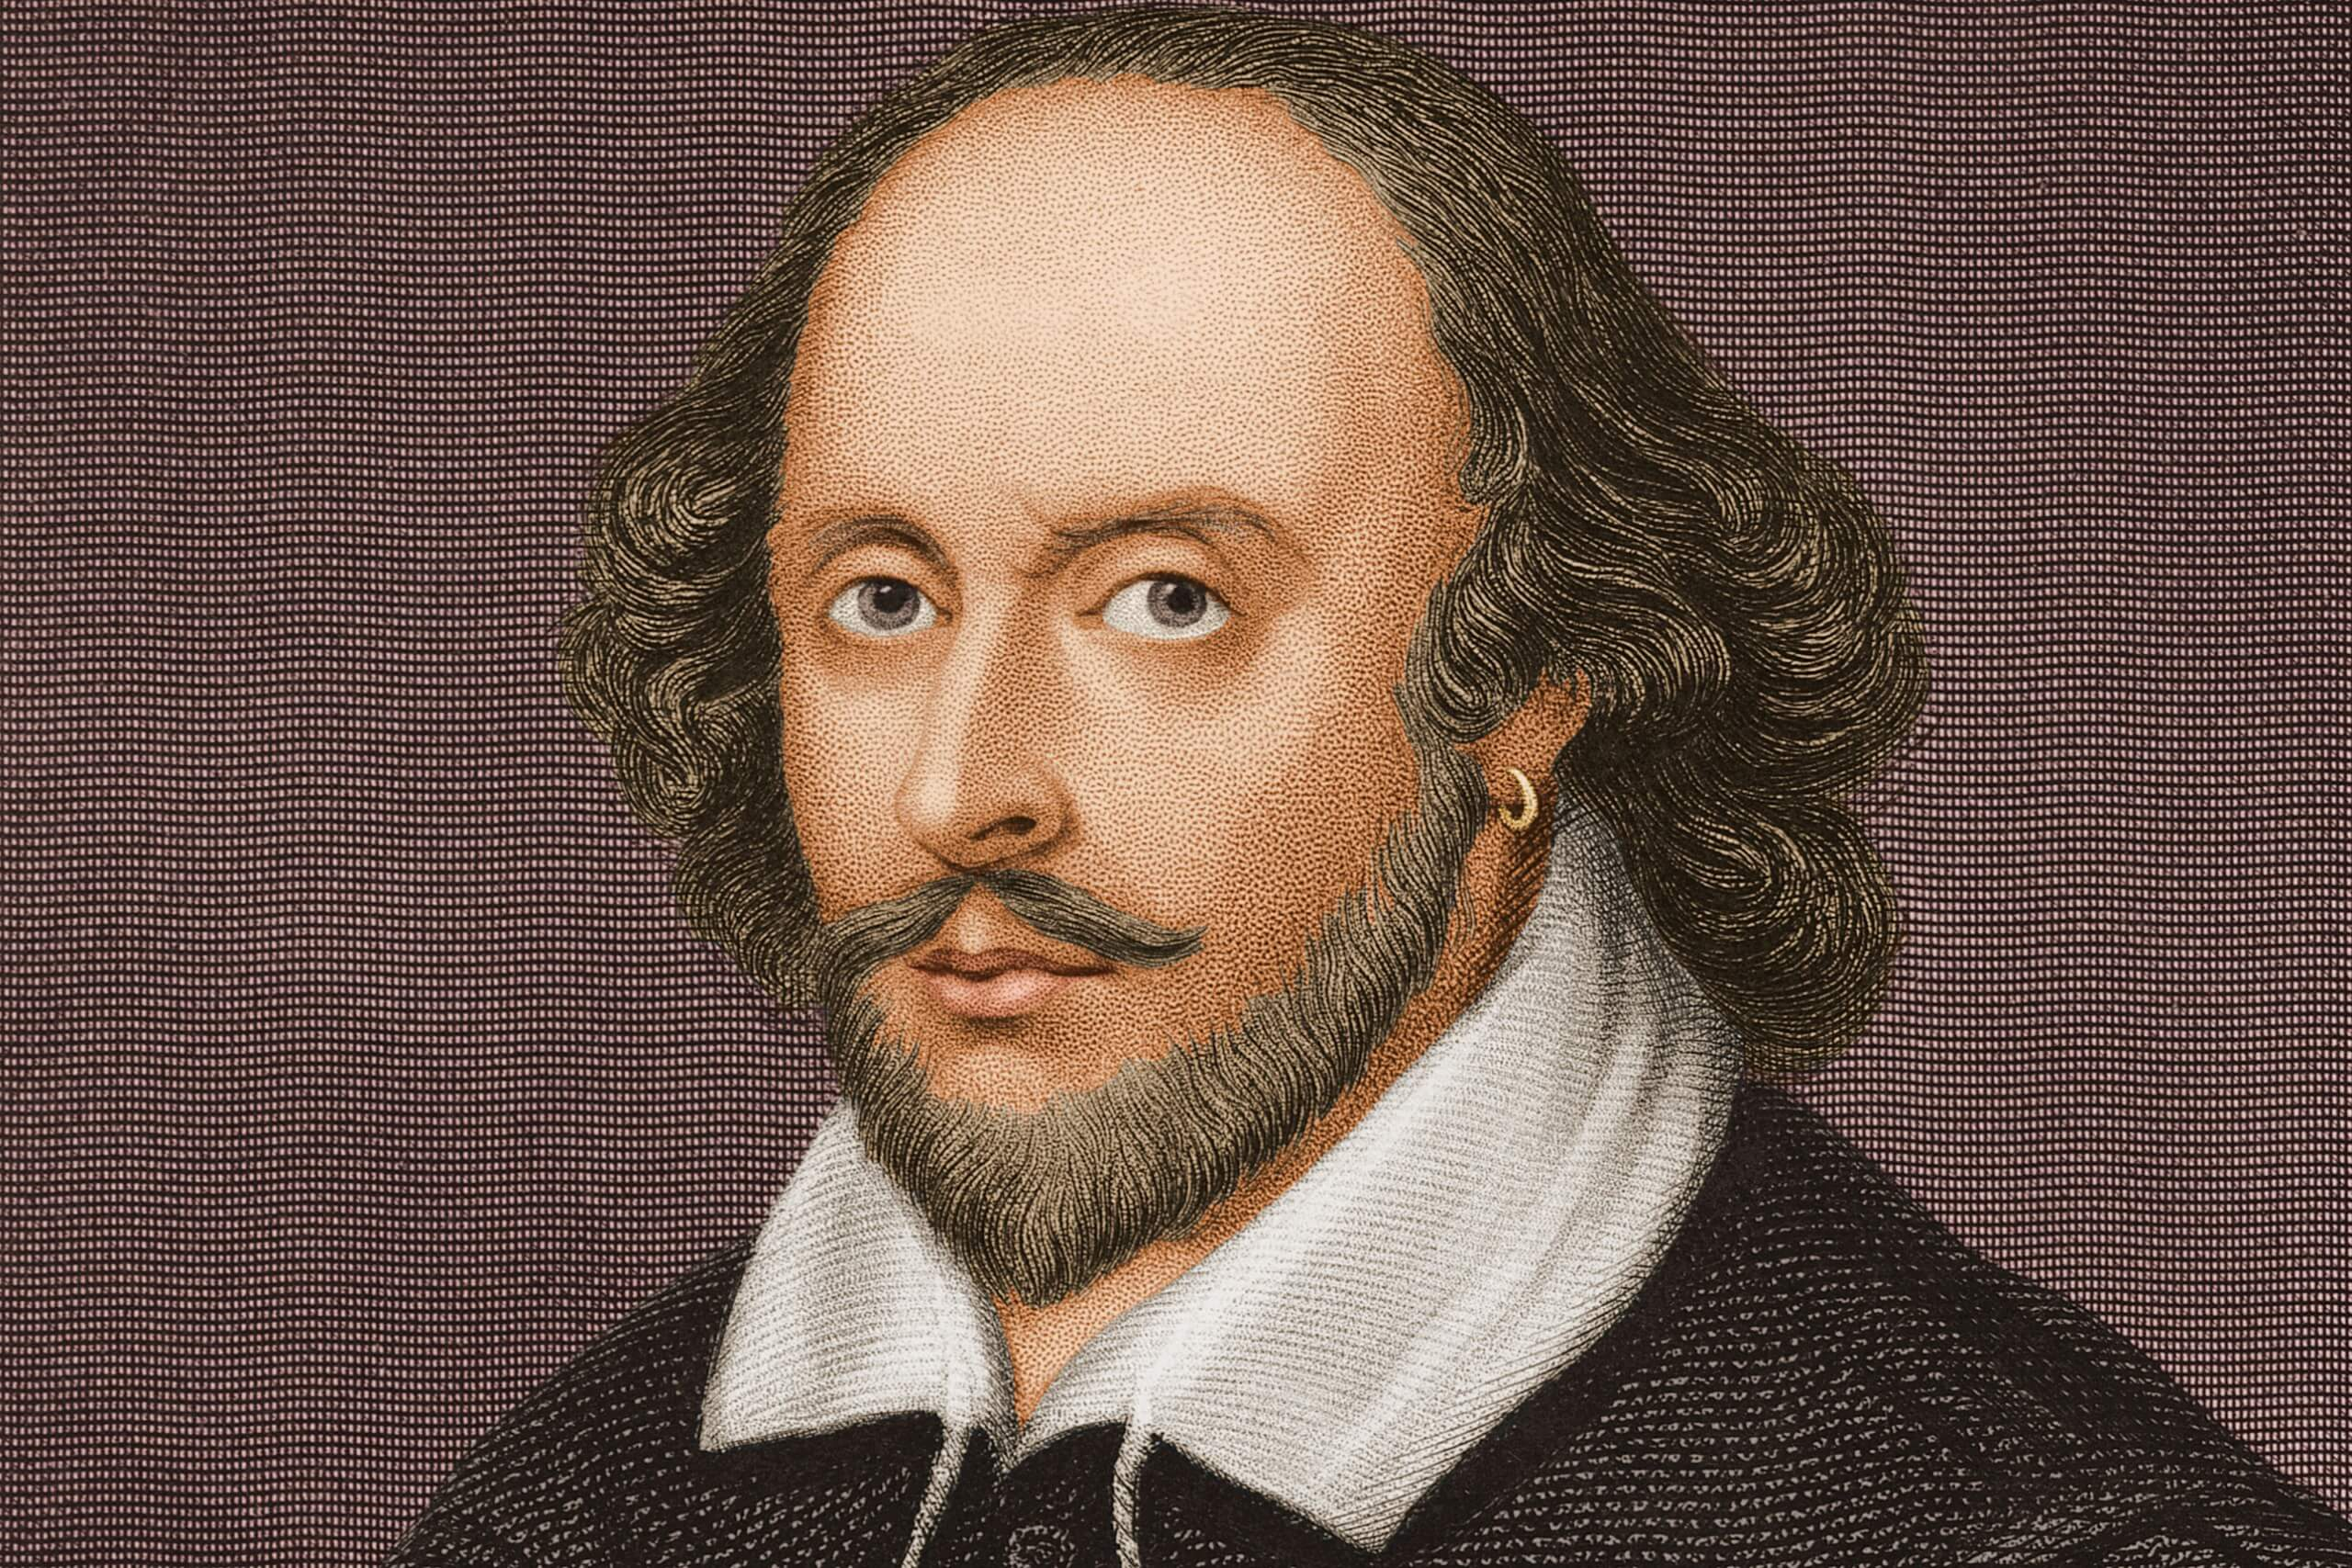 Someone just tweeted the entire works of Shakespeare with one tweet